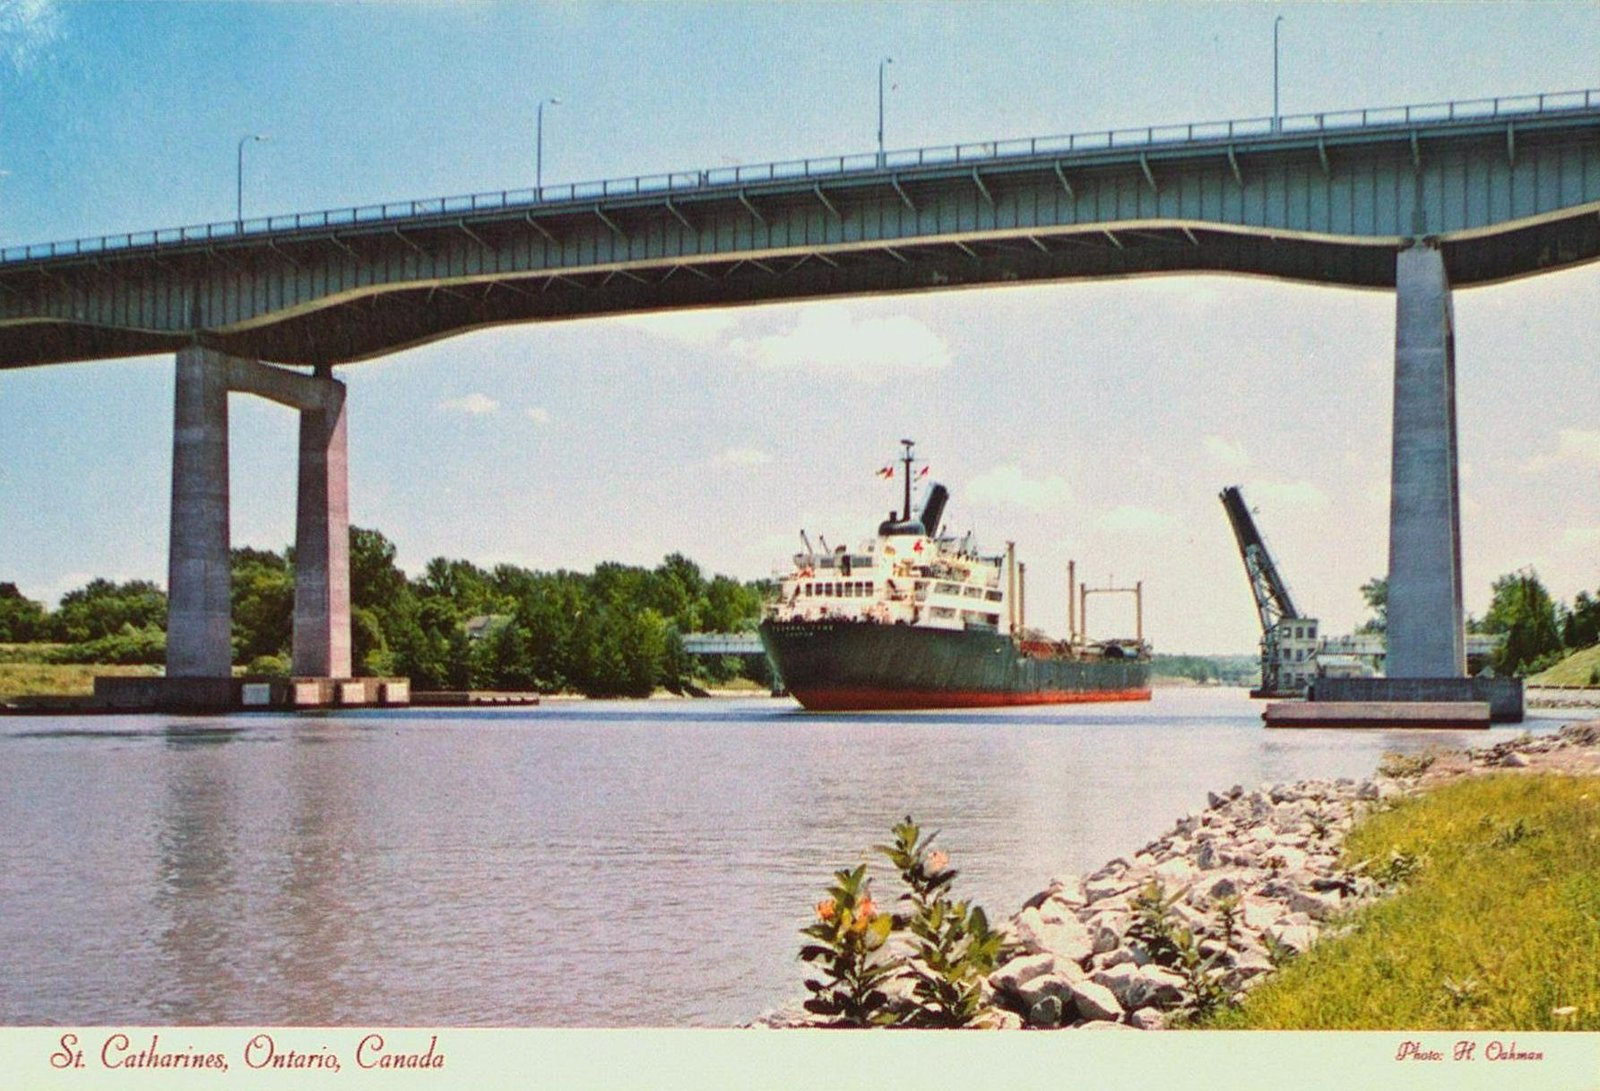 The Welland Ship Canal and the Garden City Skyway